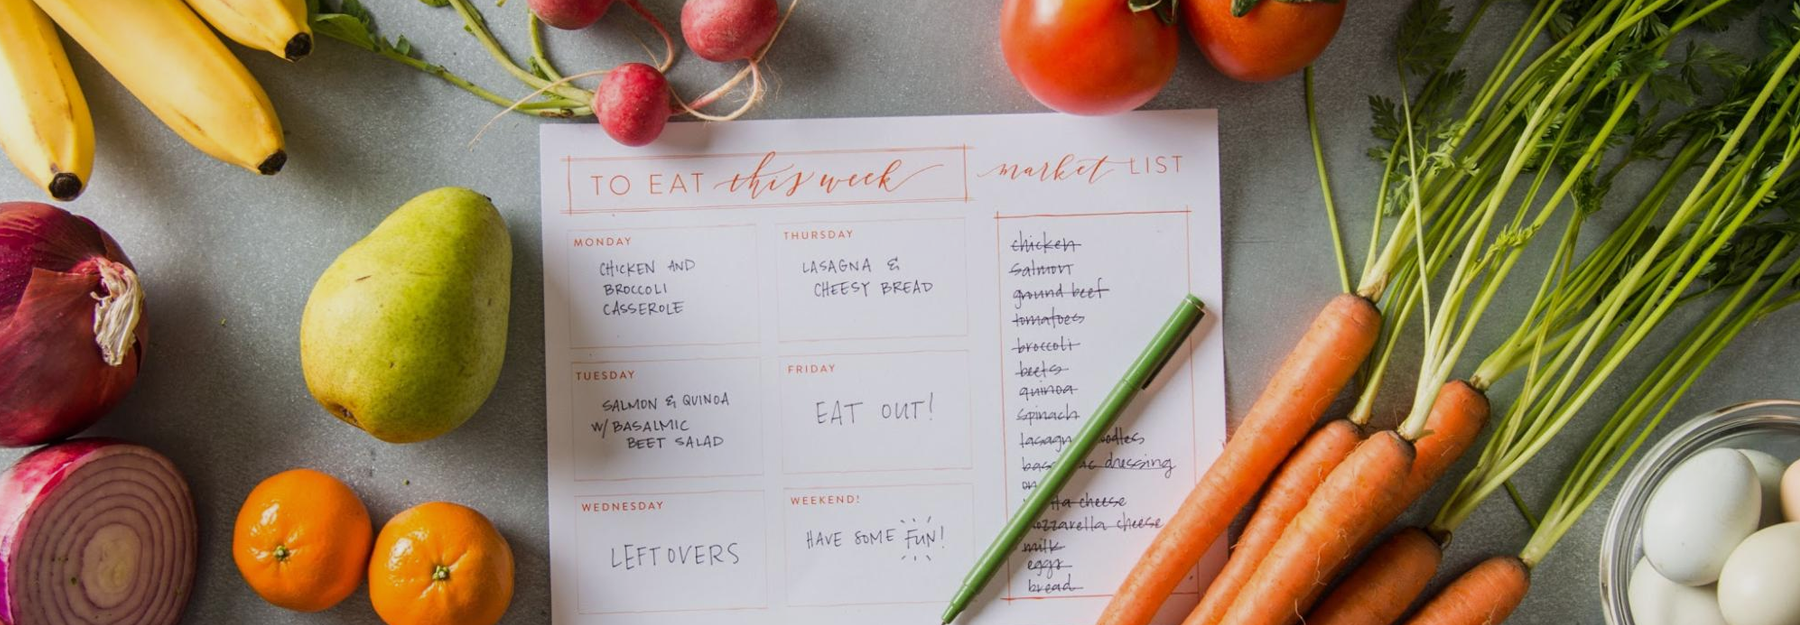 Meal Planning & Recipes